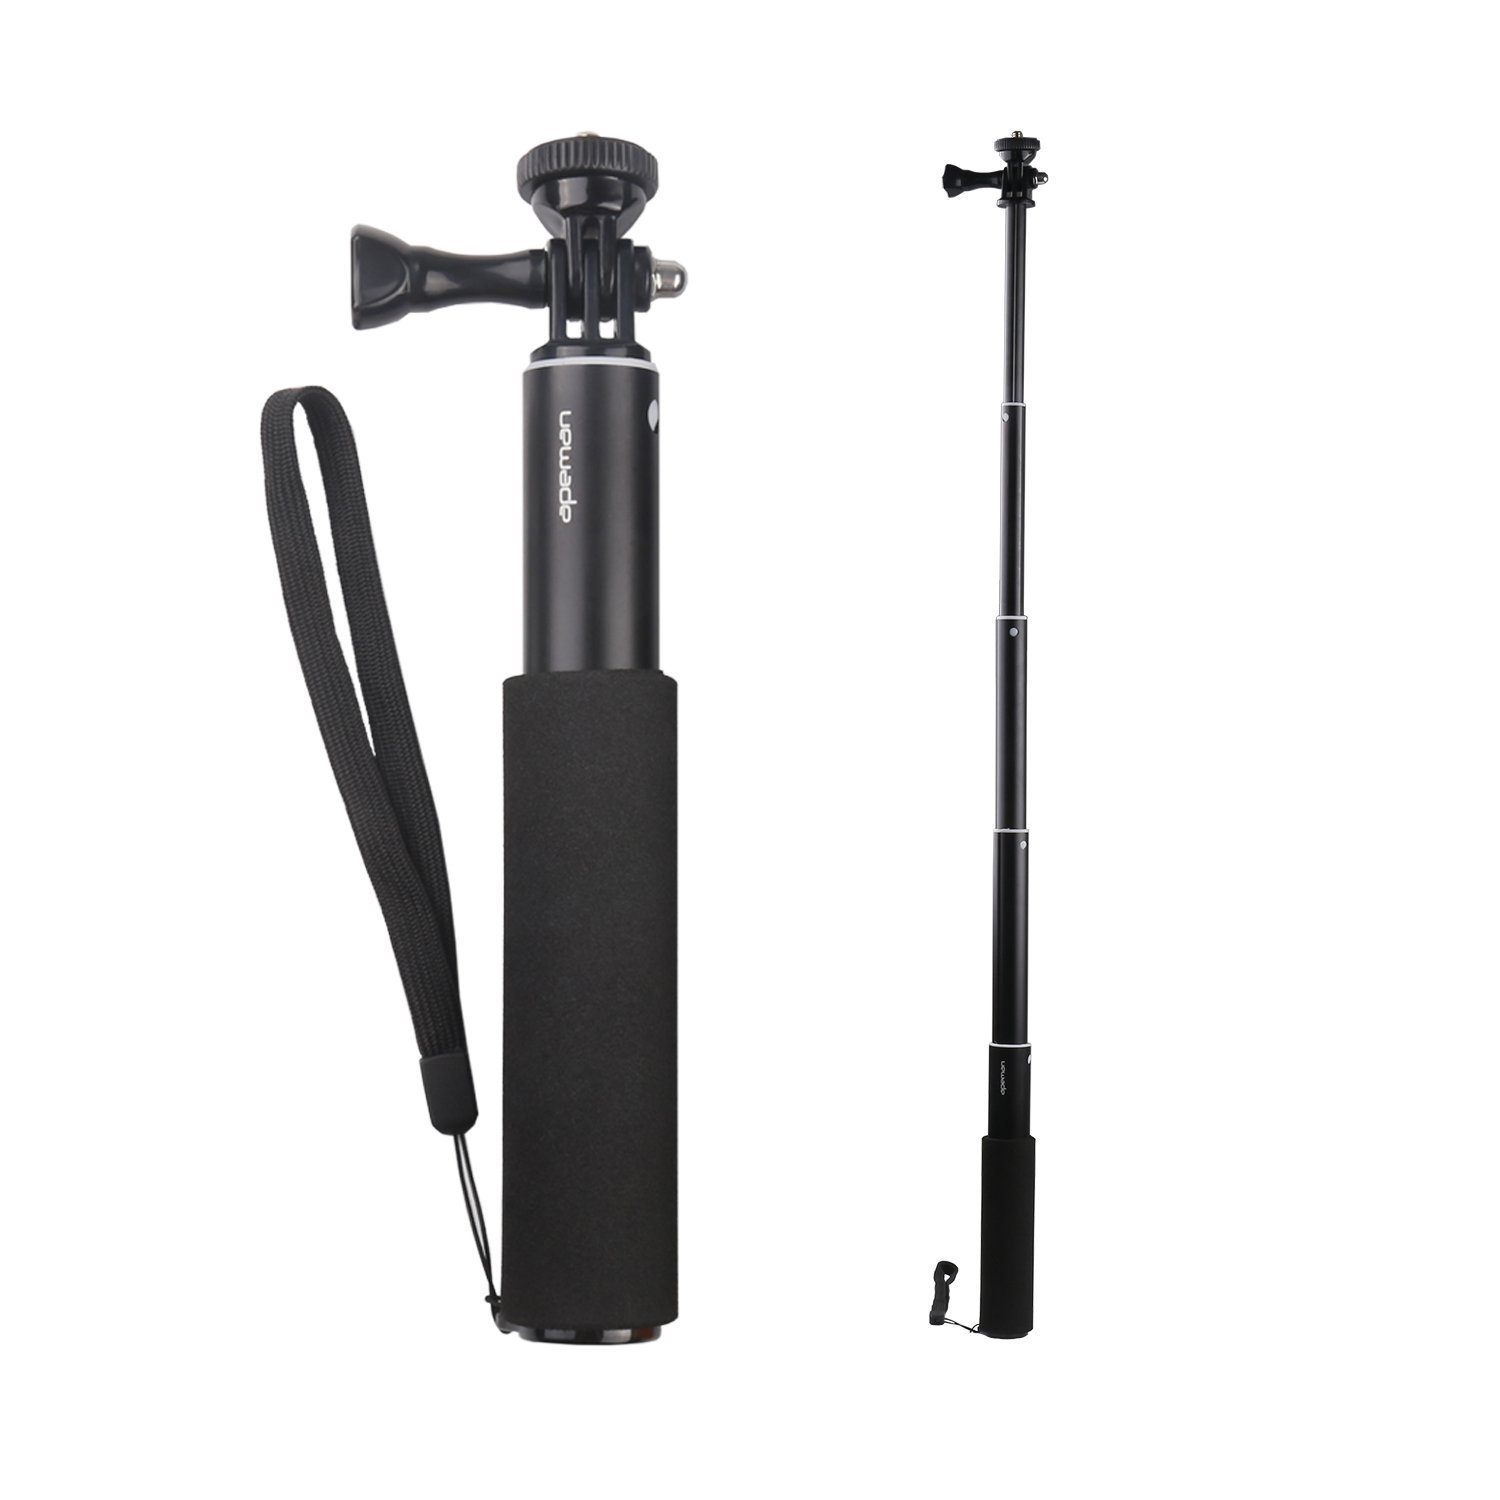 Apeman Selfie Stick Self-portrait Extendable Aluminum Monopod Holder Perfectly Compatiable with action cameras, smartphones, waterproof cases